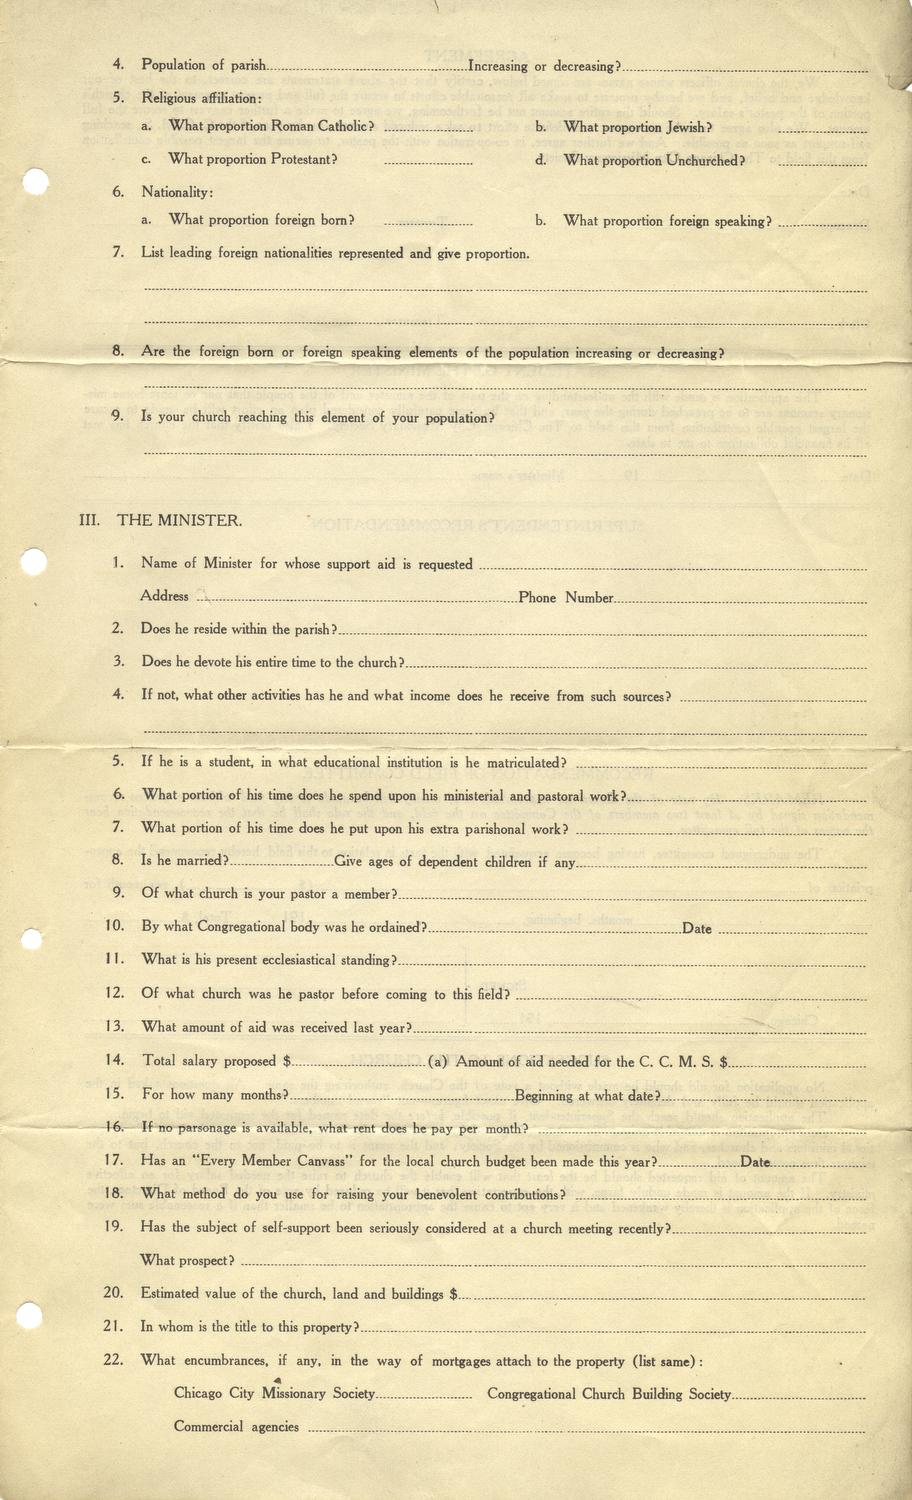 Application for aid, p. 3